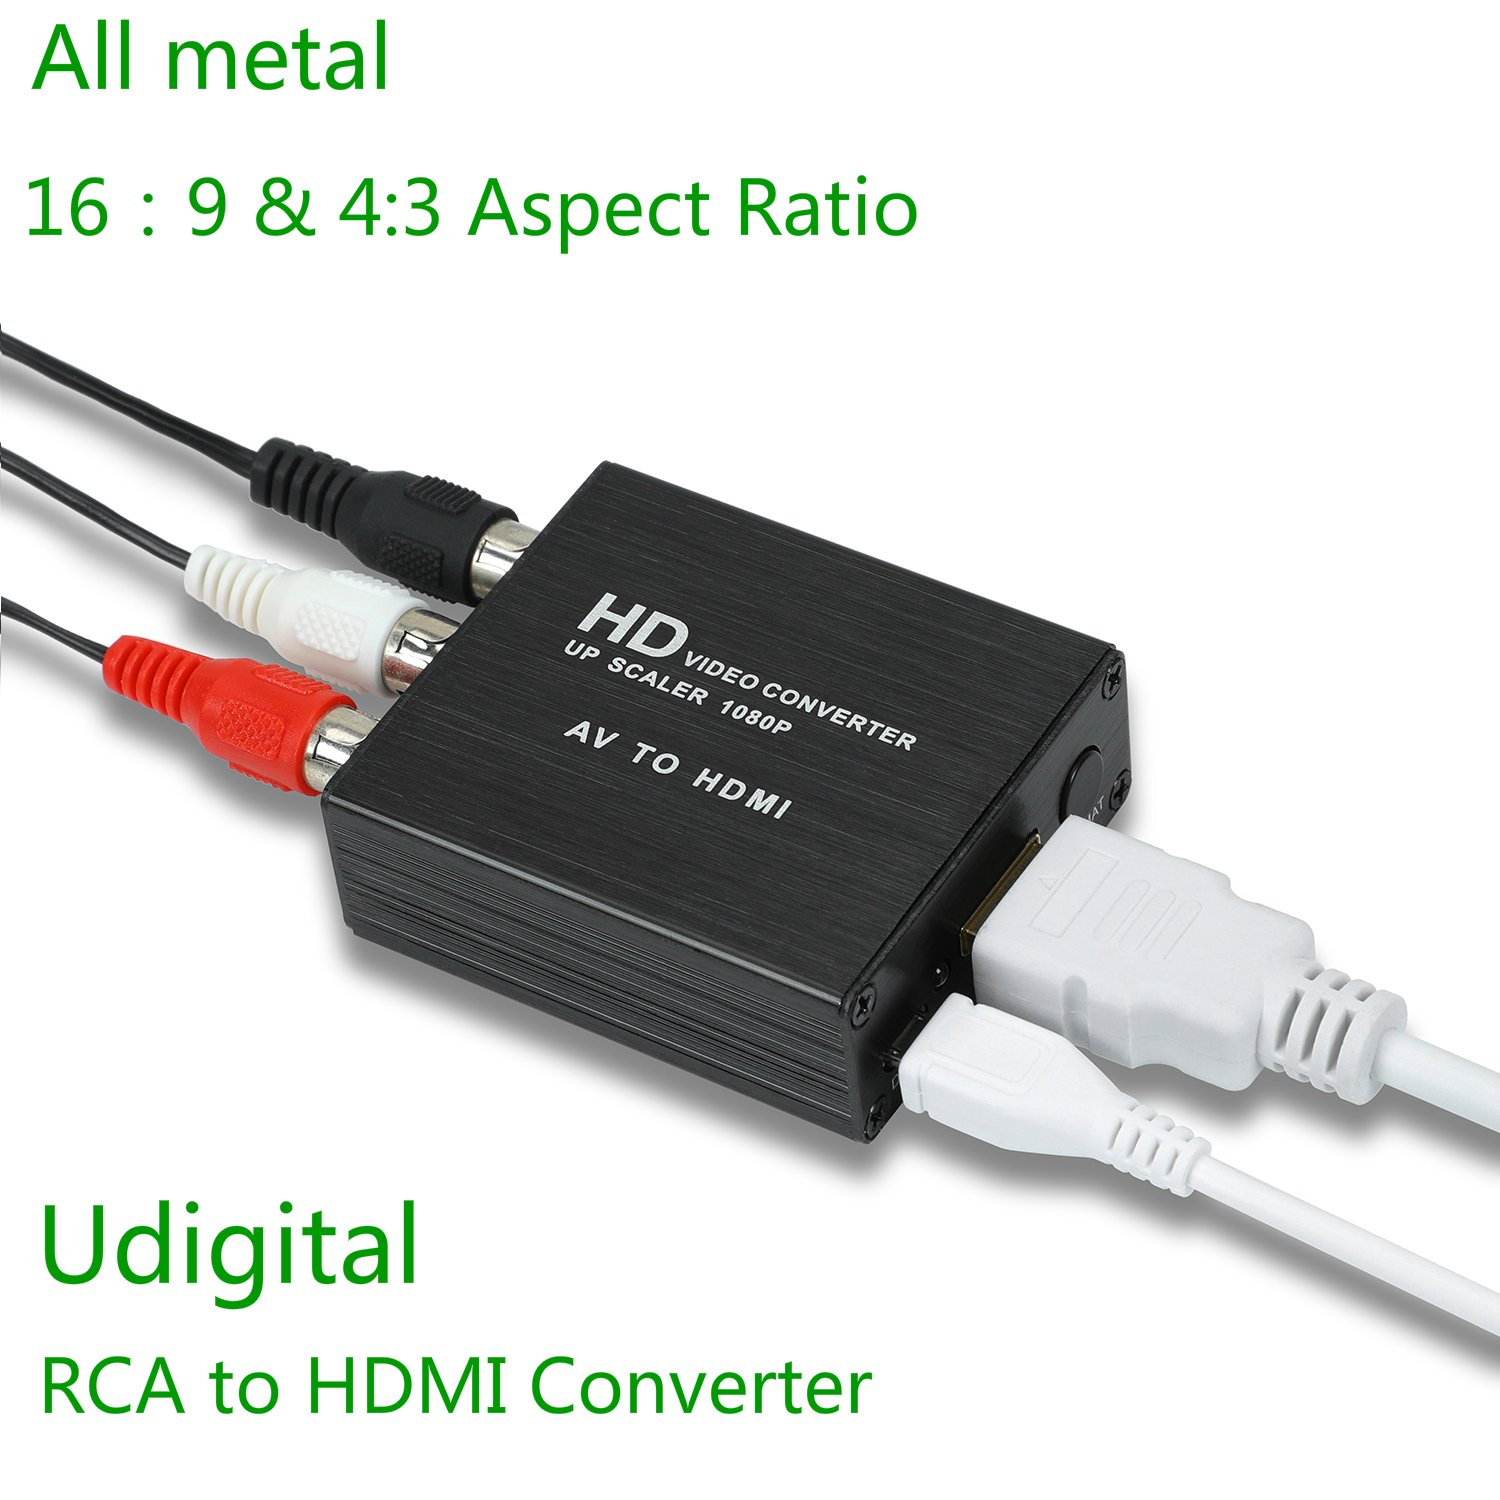 RCA to HDMI,Udigital mini RCA AV to HDMI Audio Video Adapter Converter could change aspect ratio 16:9 and 4:3 for PC Laptop Xbox PS4 PS3 HDTV STB VHS VCR Camera DVD USB Cable All metal Black by Udigital